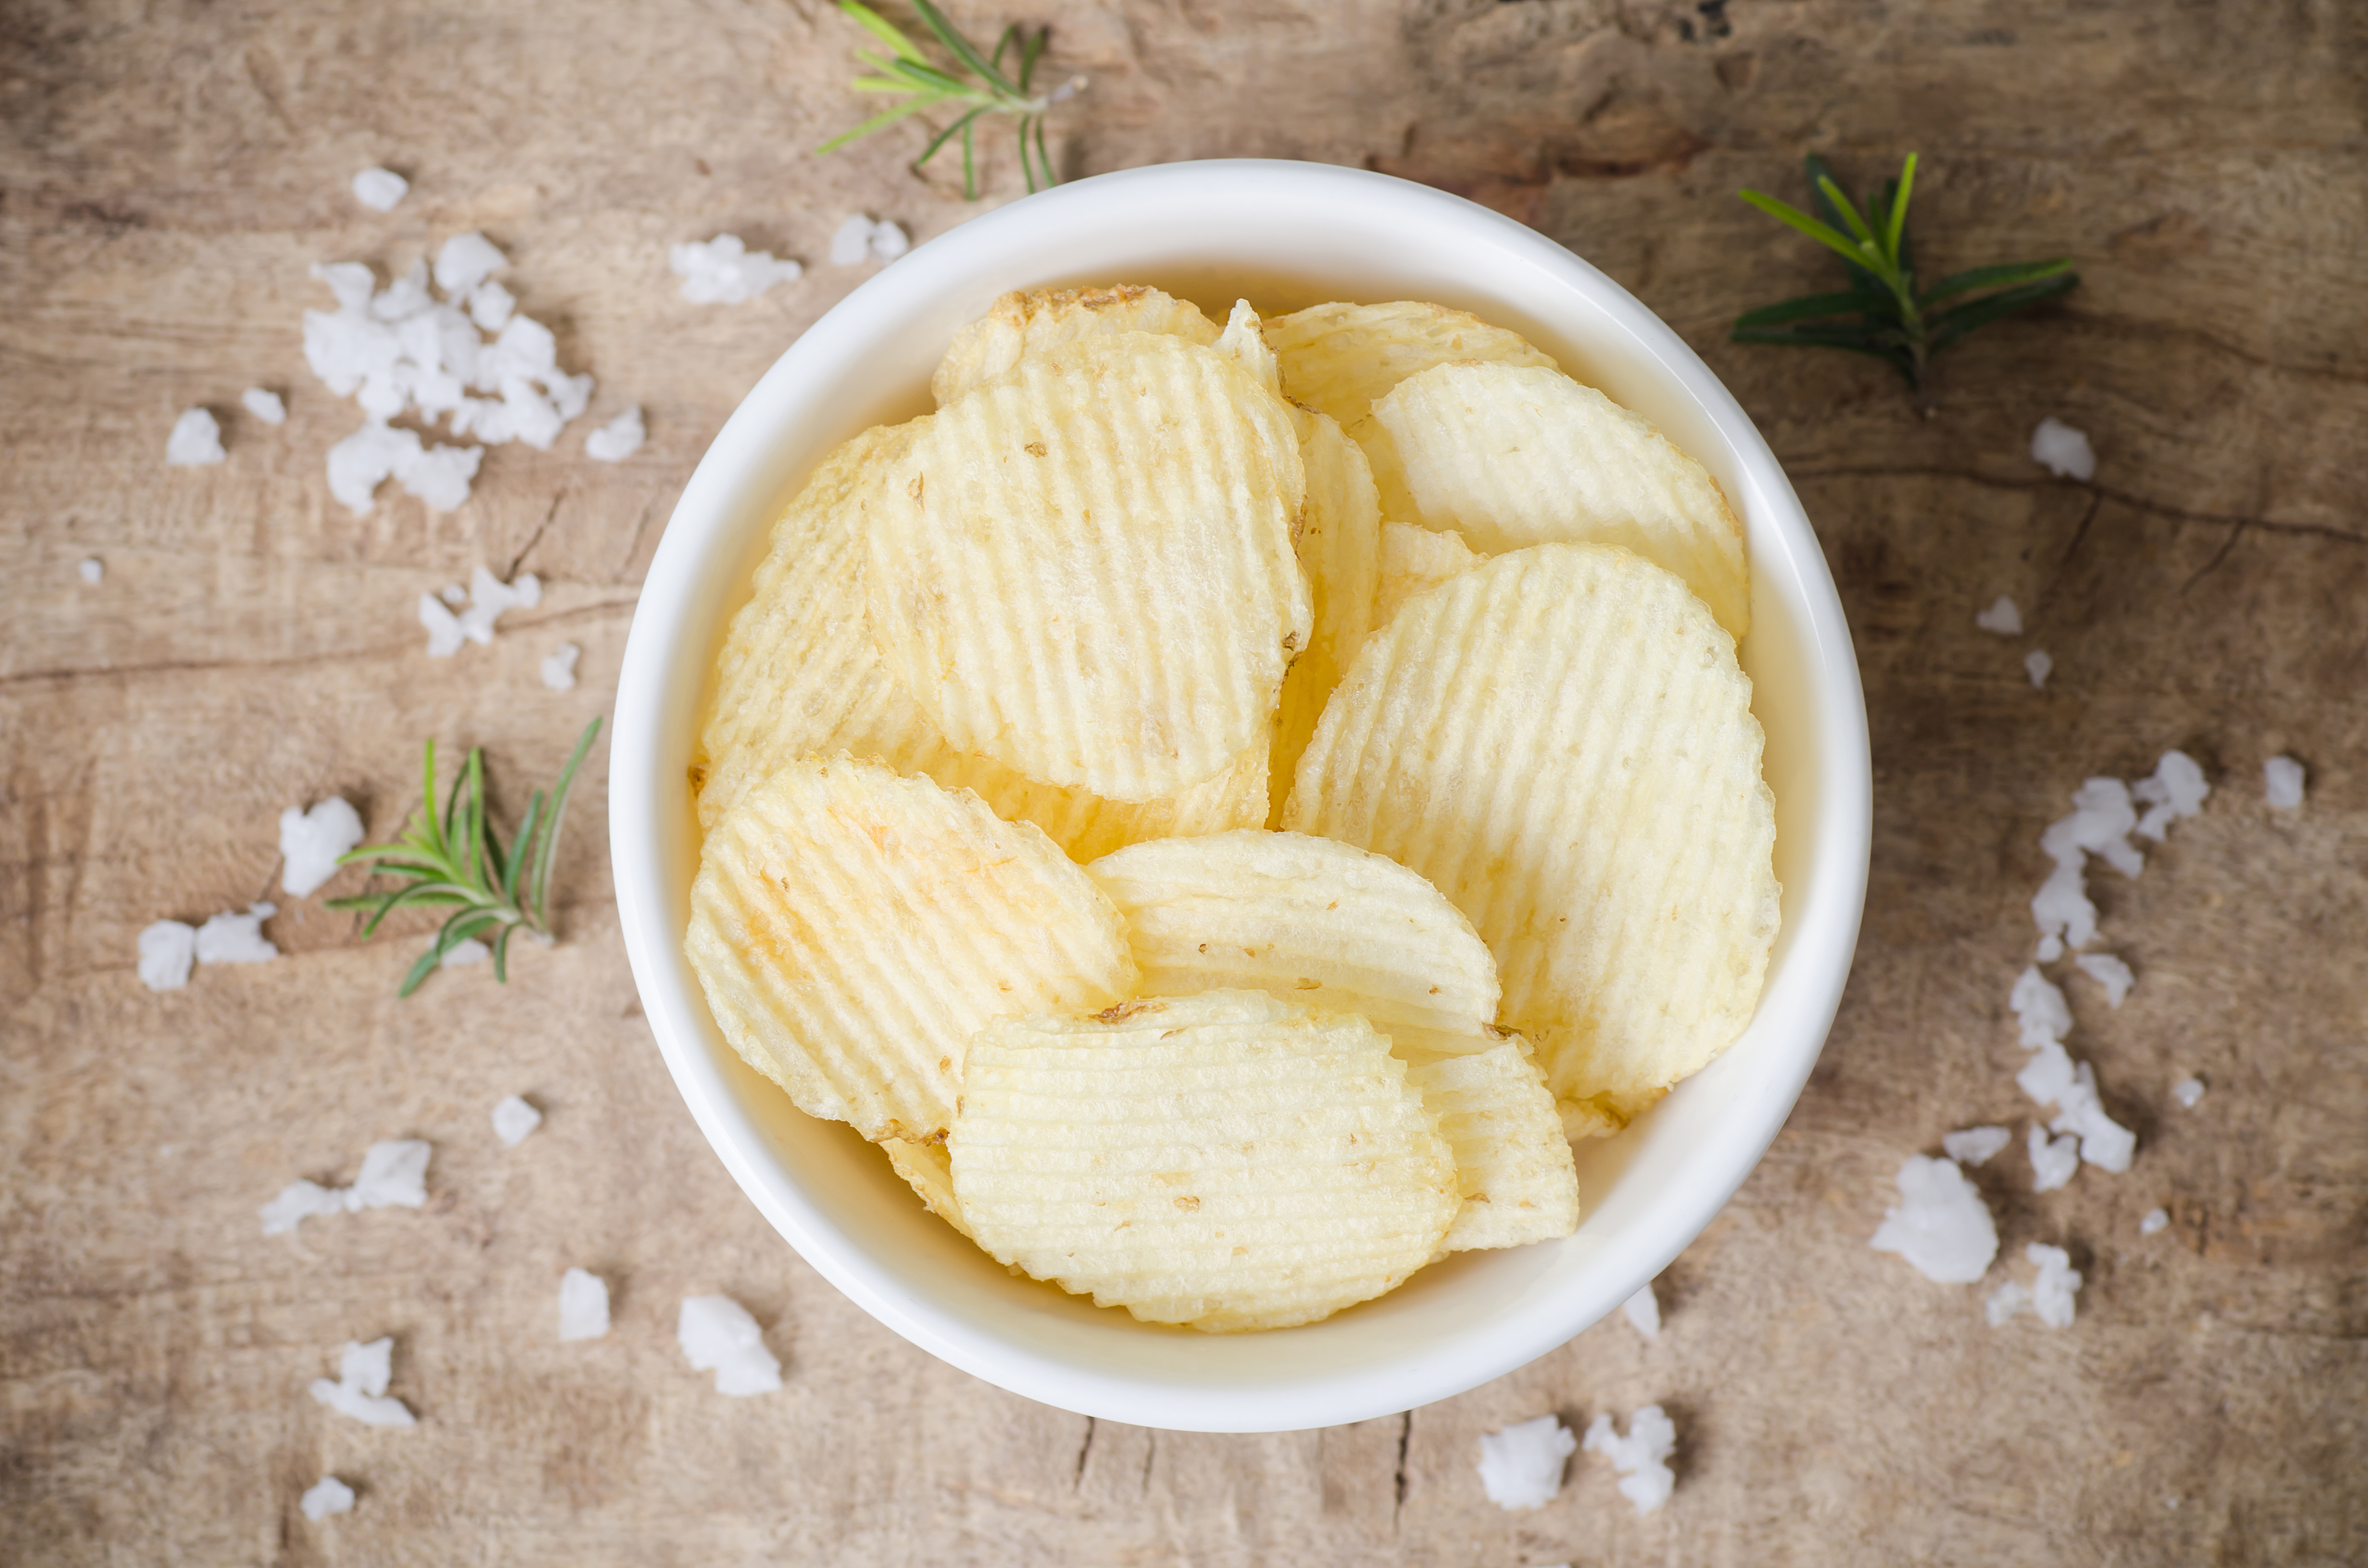 What Are the Negative Effects of Chips? | Healthy Eating | SF Gate